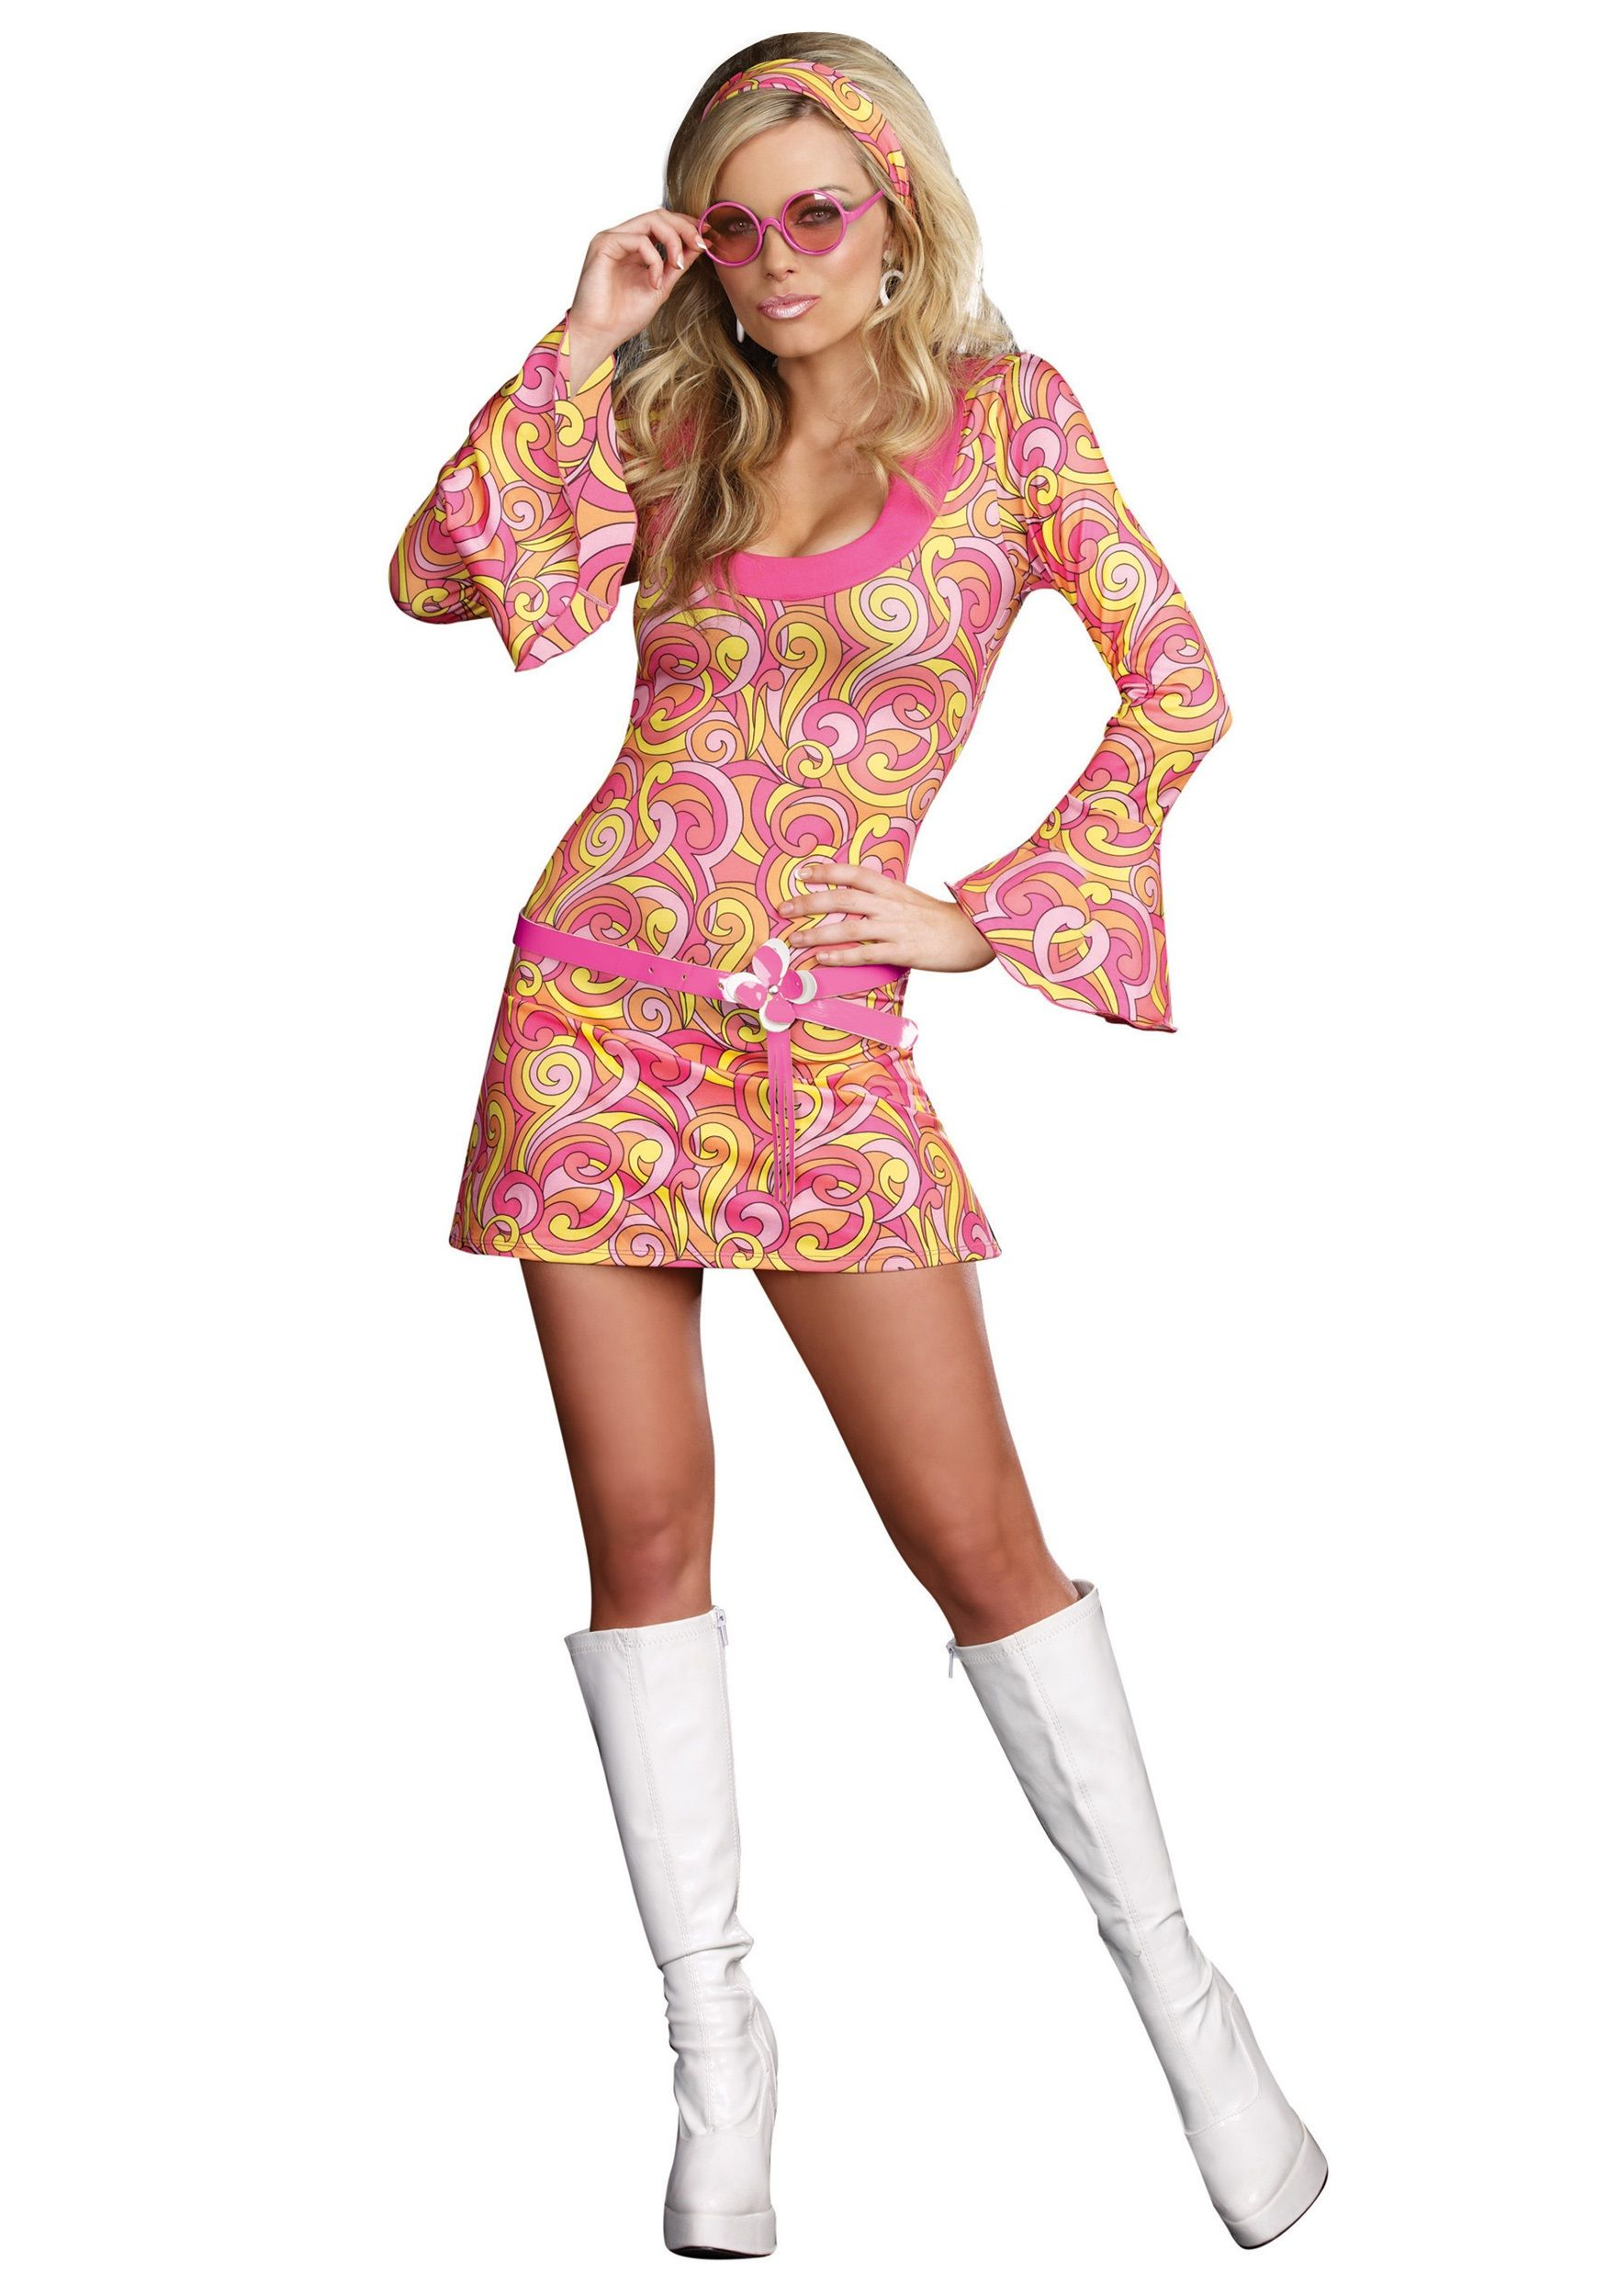 6558050851d0 Groovy Go Go Dancer Costume | HOLIDAY - Halloween | 1970s costumes ...